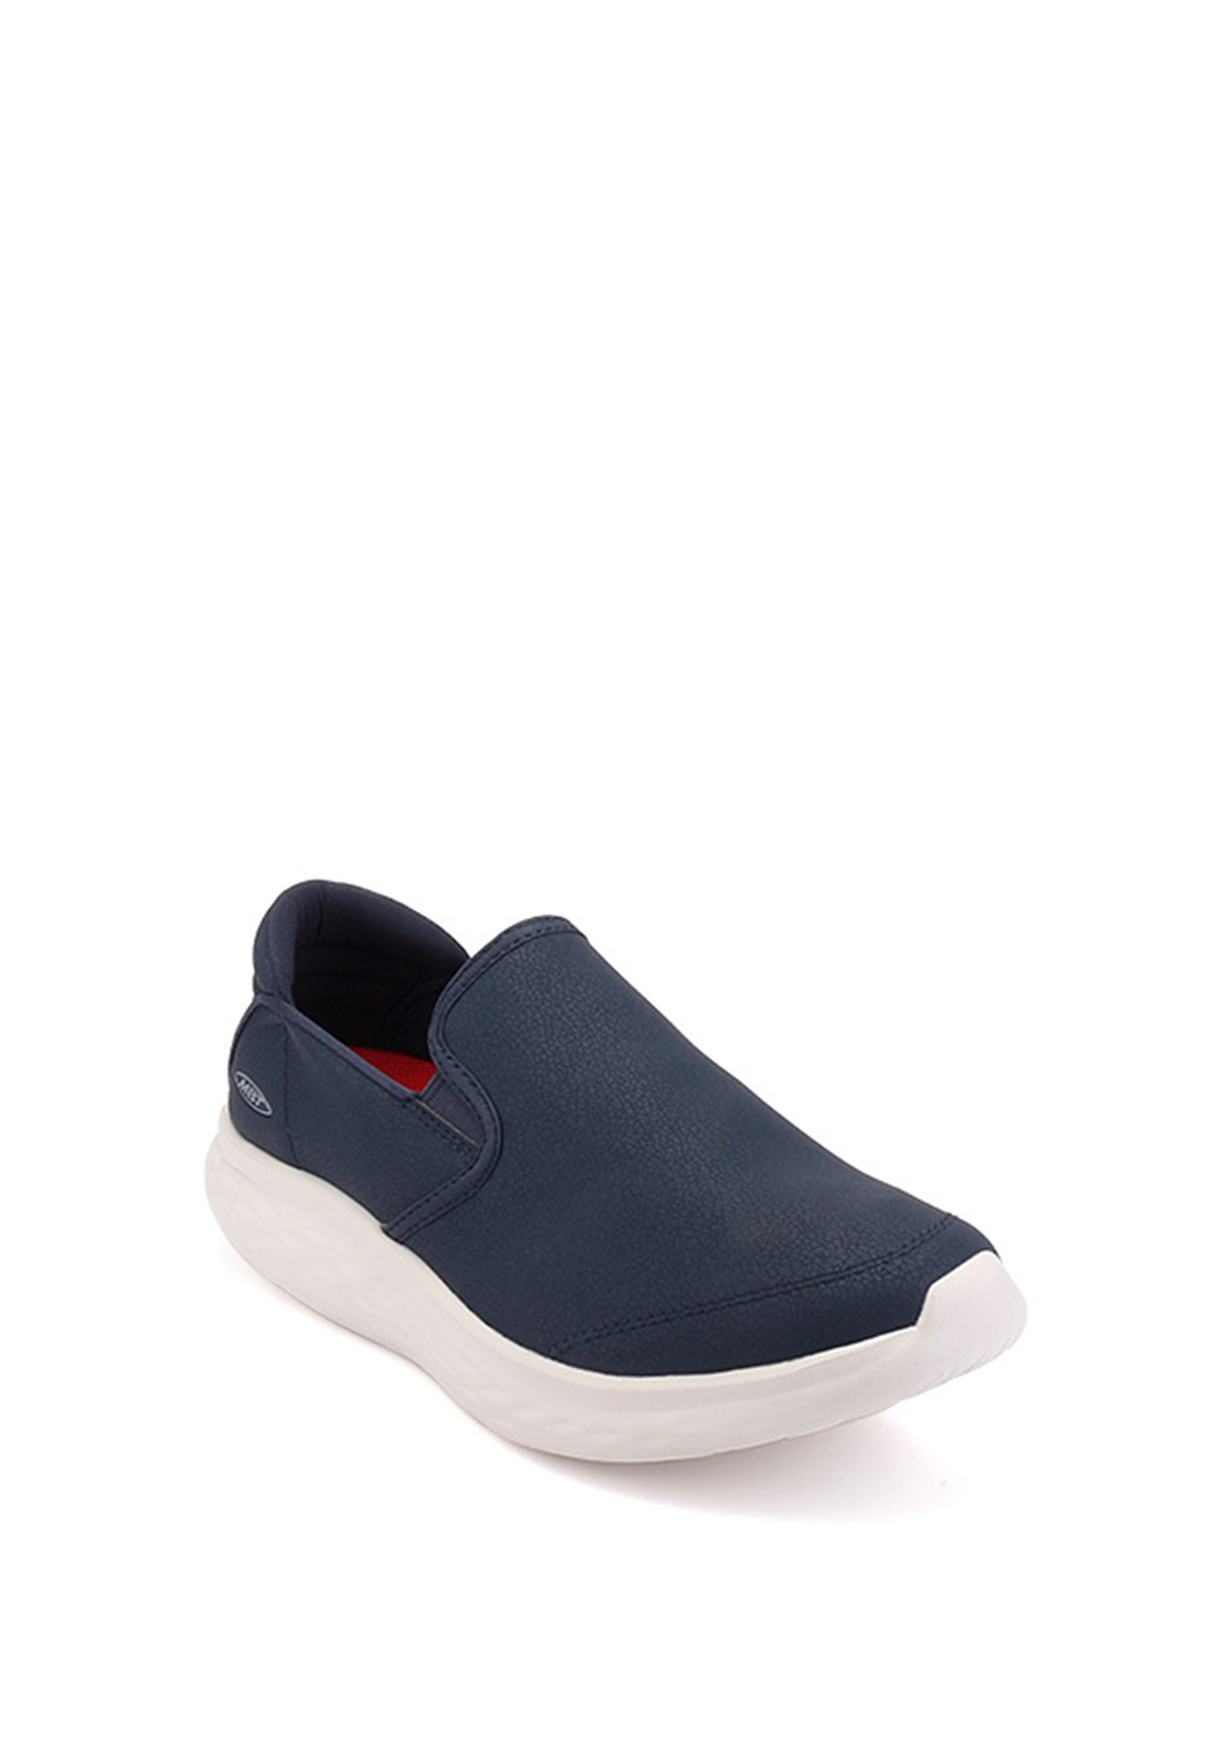 Modena Slip On Synthetic Leather